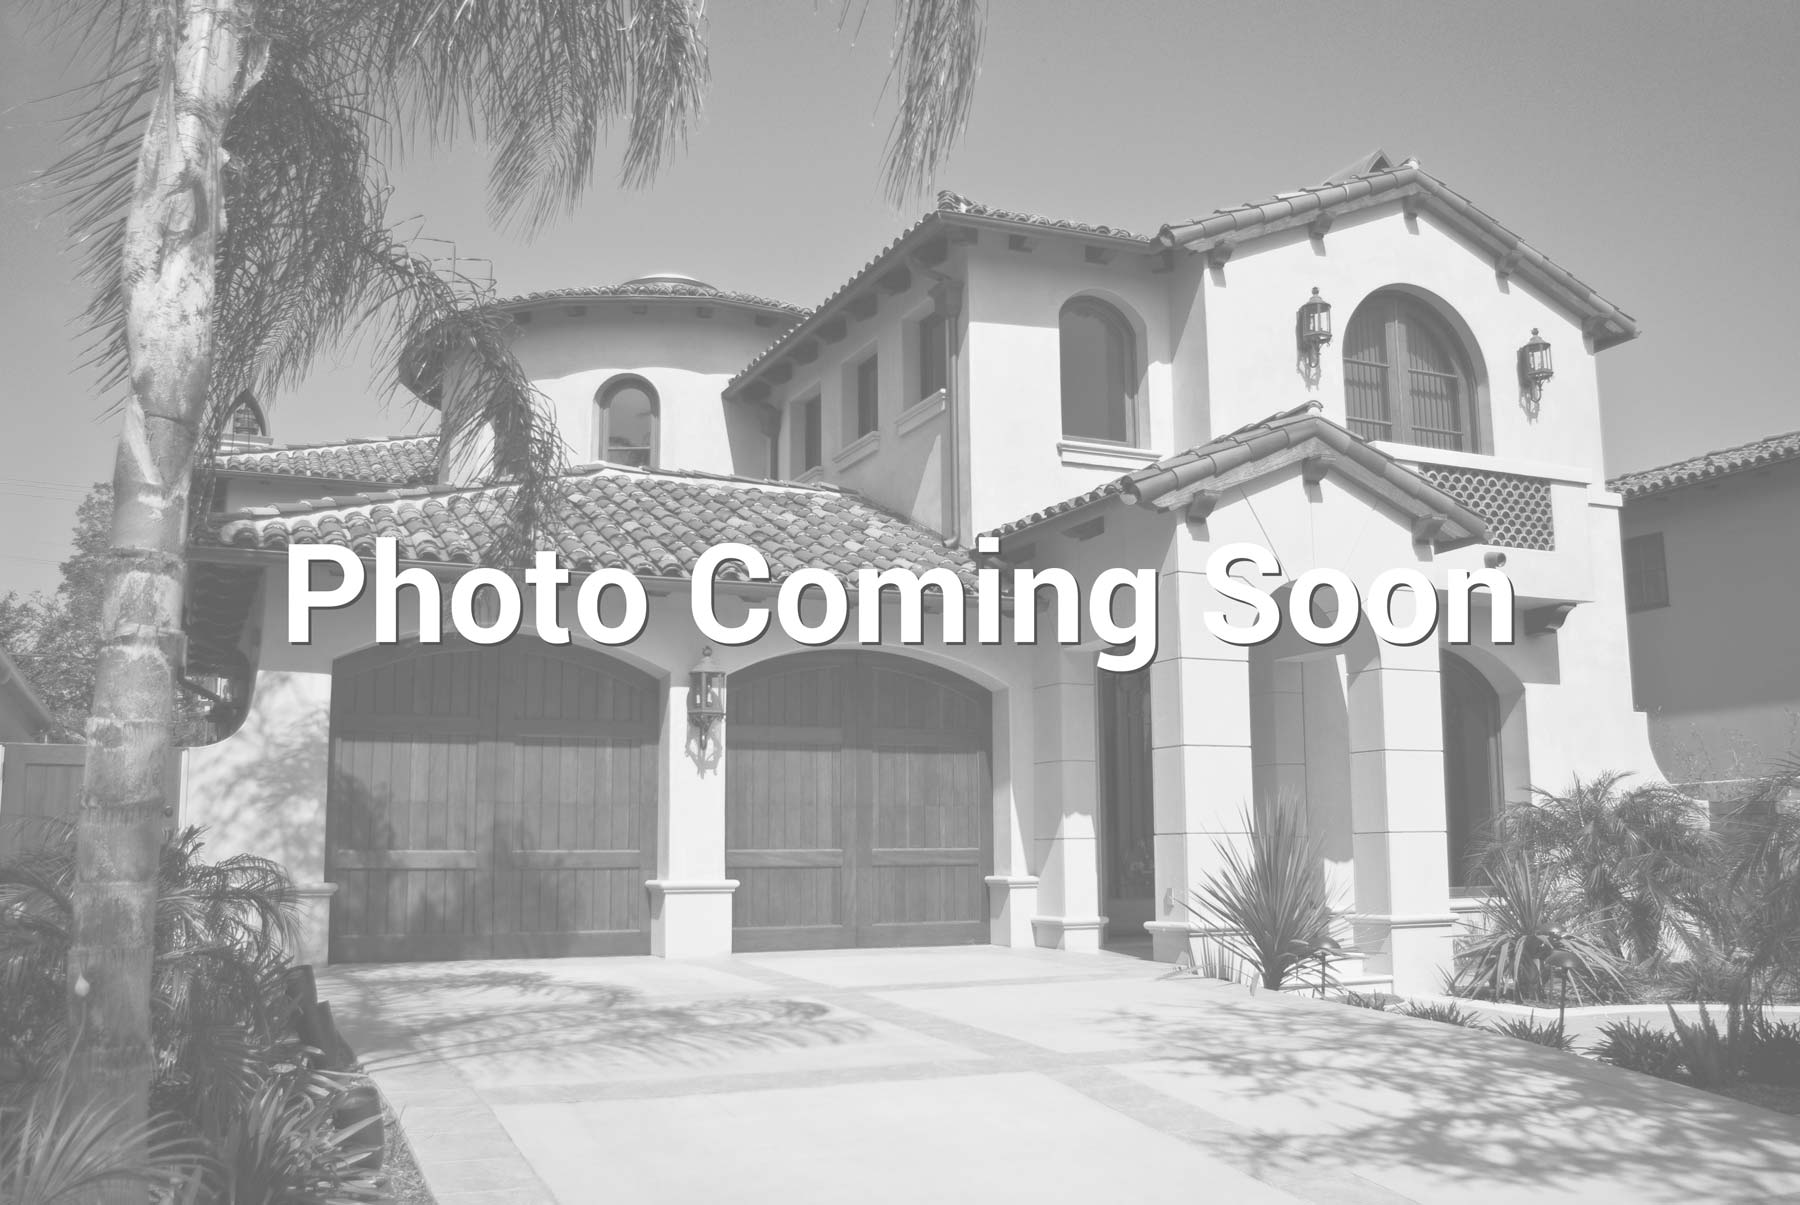 $495,000 - 3Br/2Ba - Home for Sale in Reserve At Fulton Ranch, Chandler